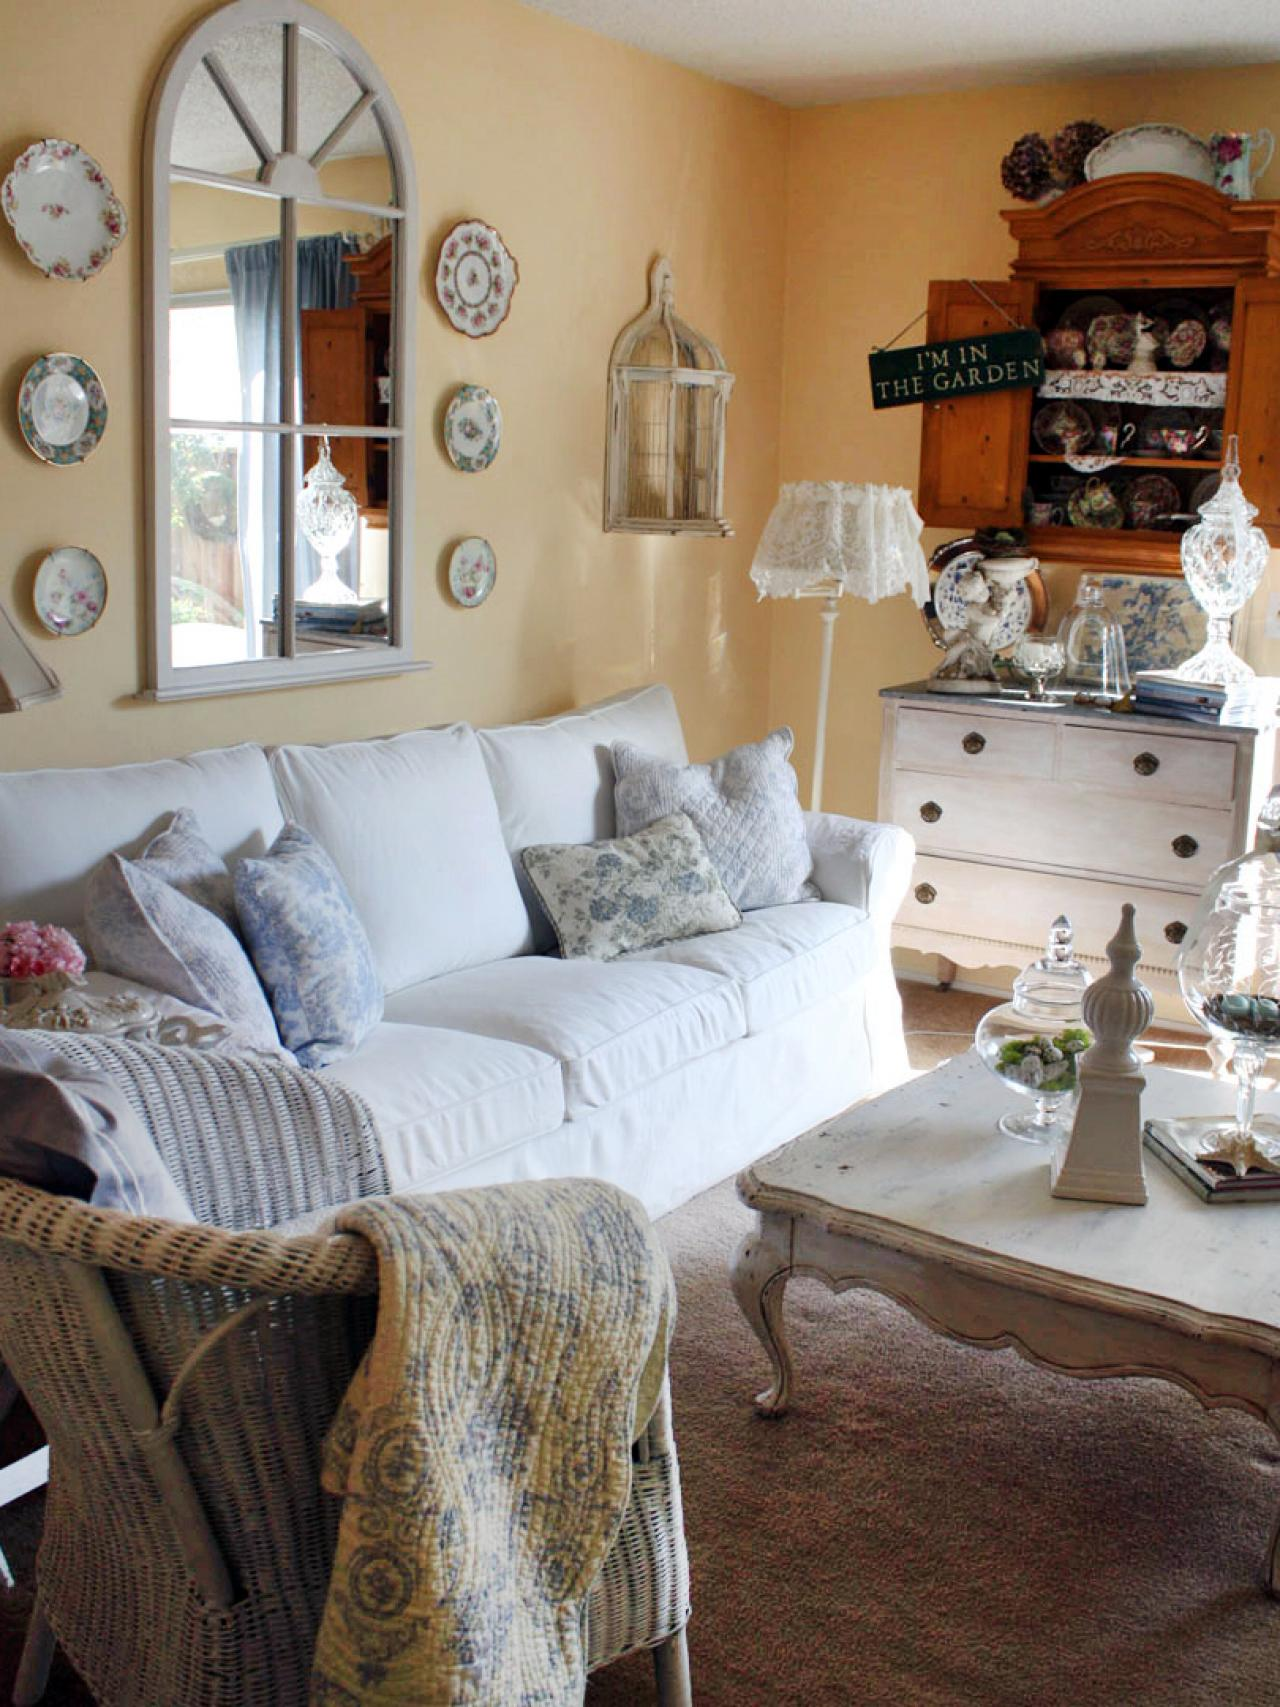 25 Shabby Chic Style Living Room Design Ideas Decoration - Decorating Ideas For Living Rooms